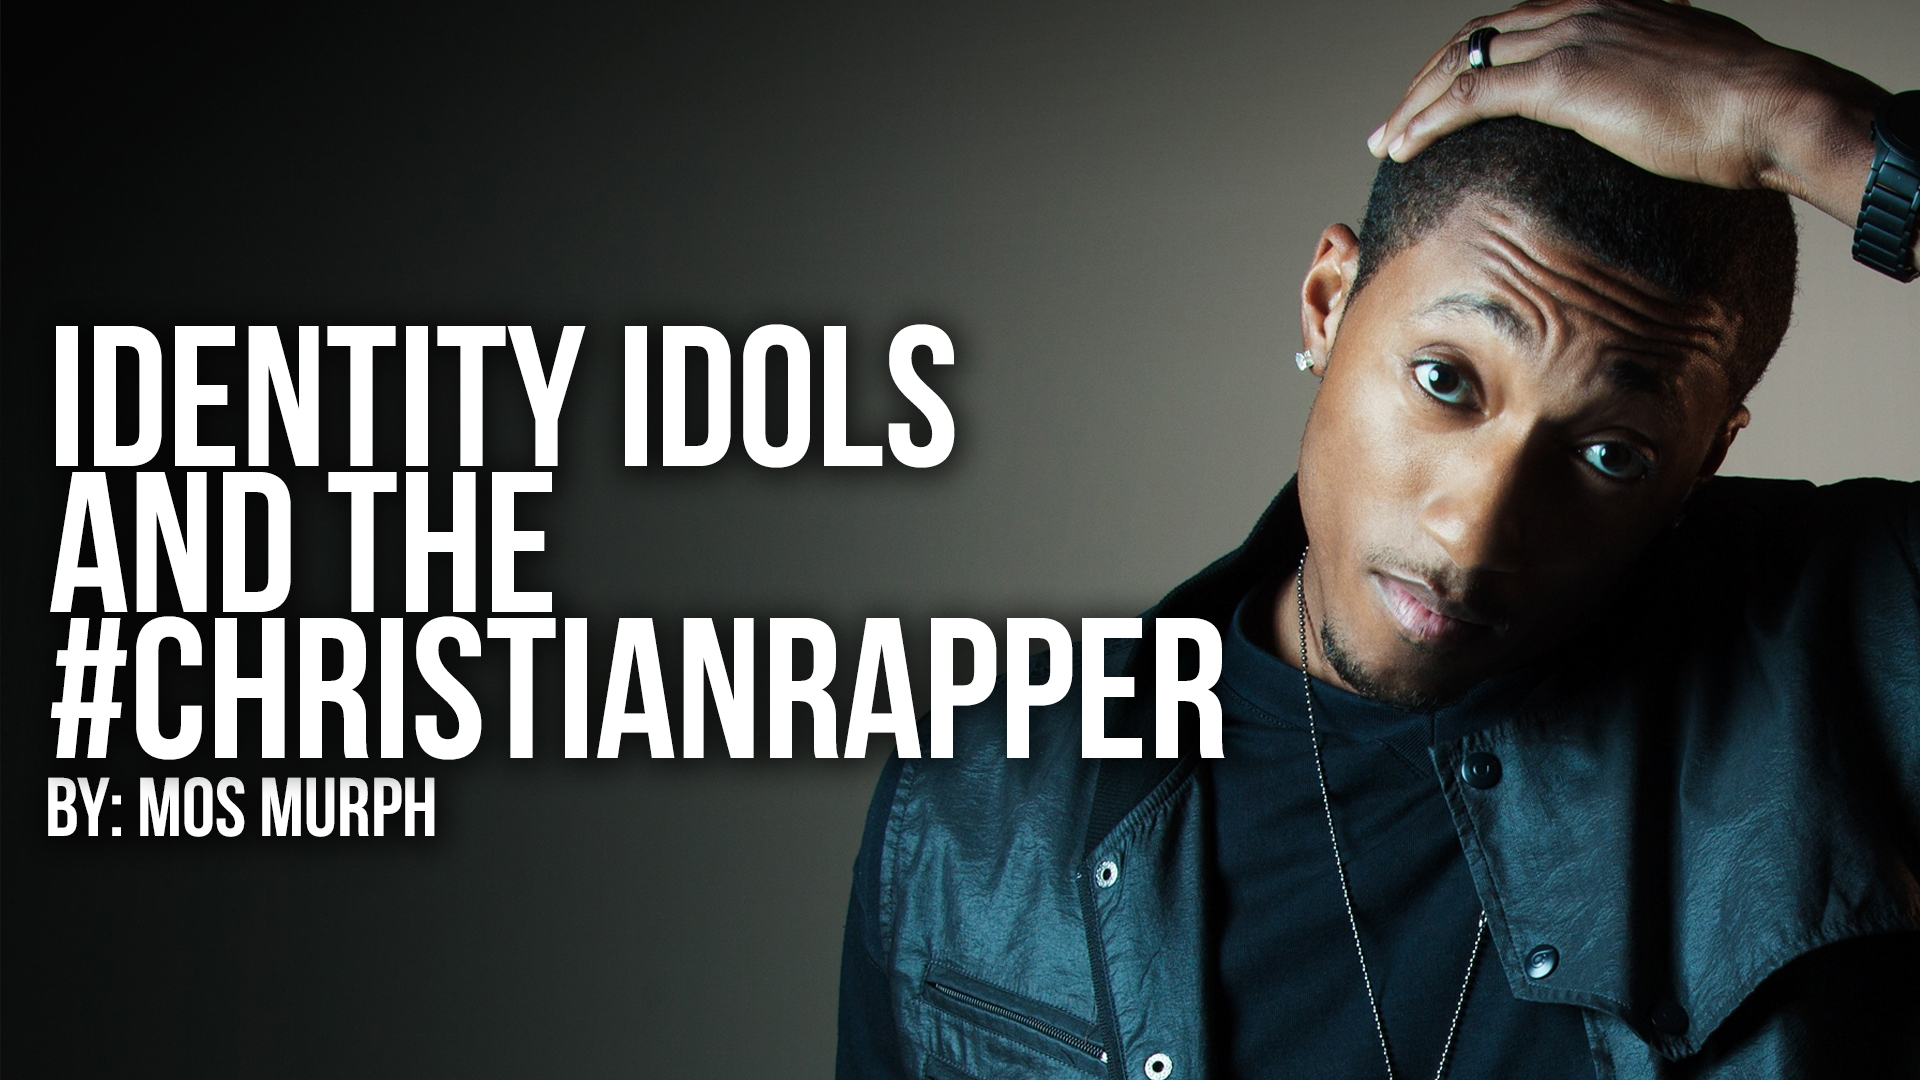 Identity Idols and the #christianrapper